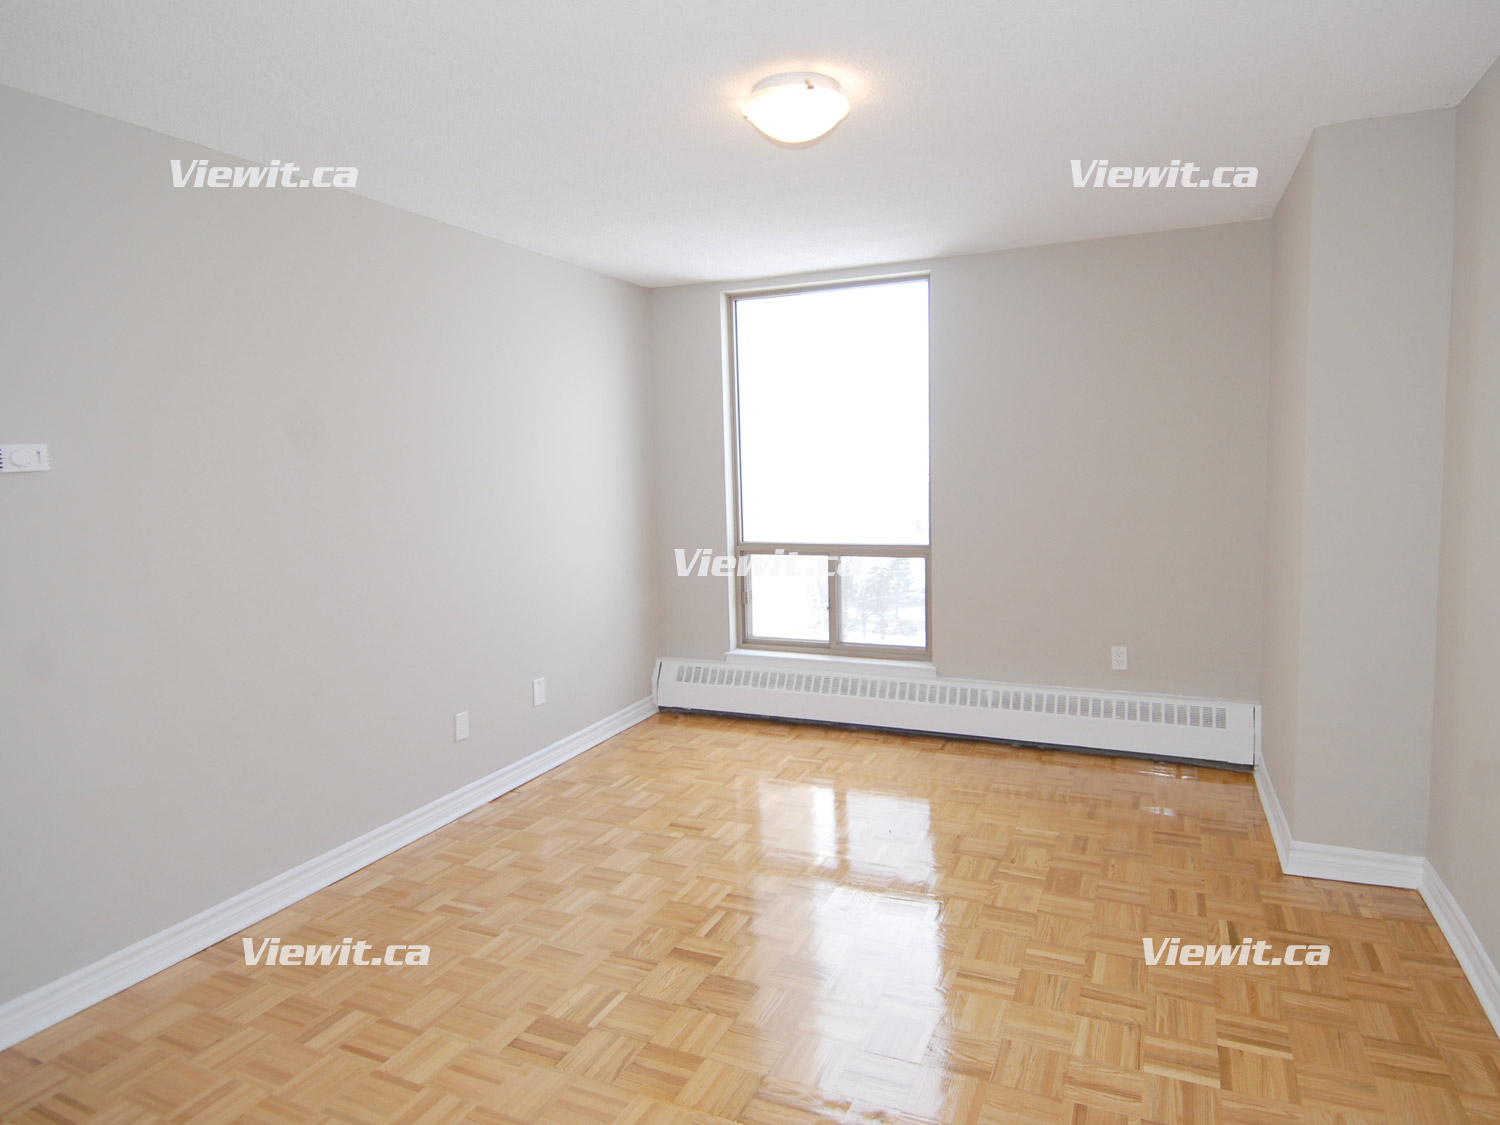 470 Sentinel Rd North York On 2 Bedroom For Rent